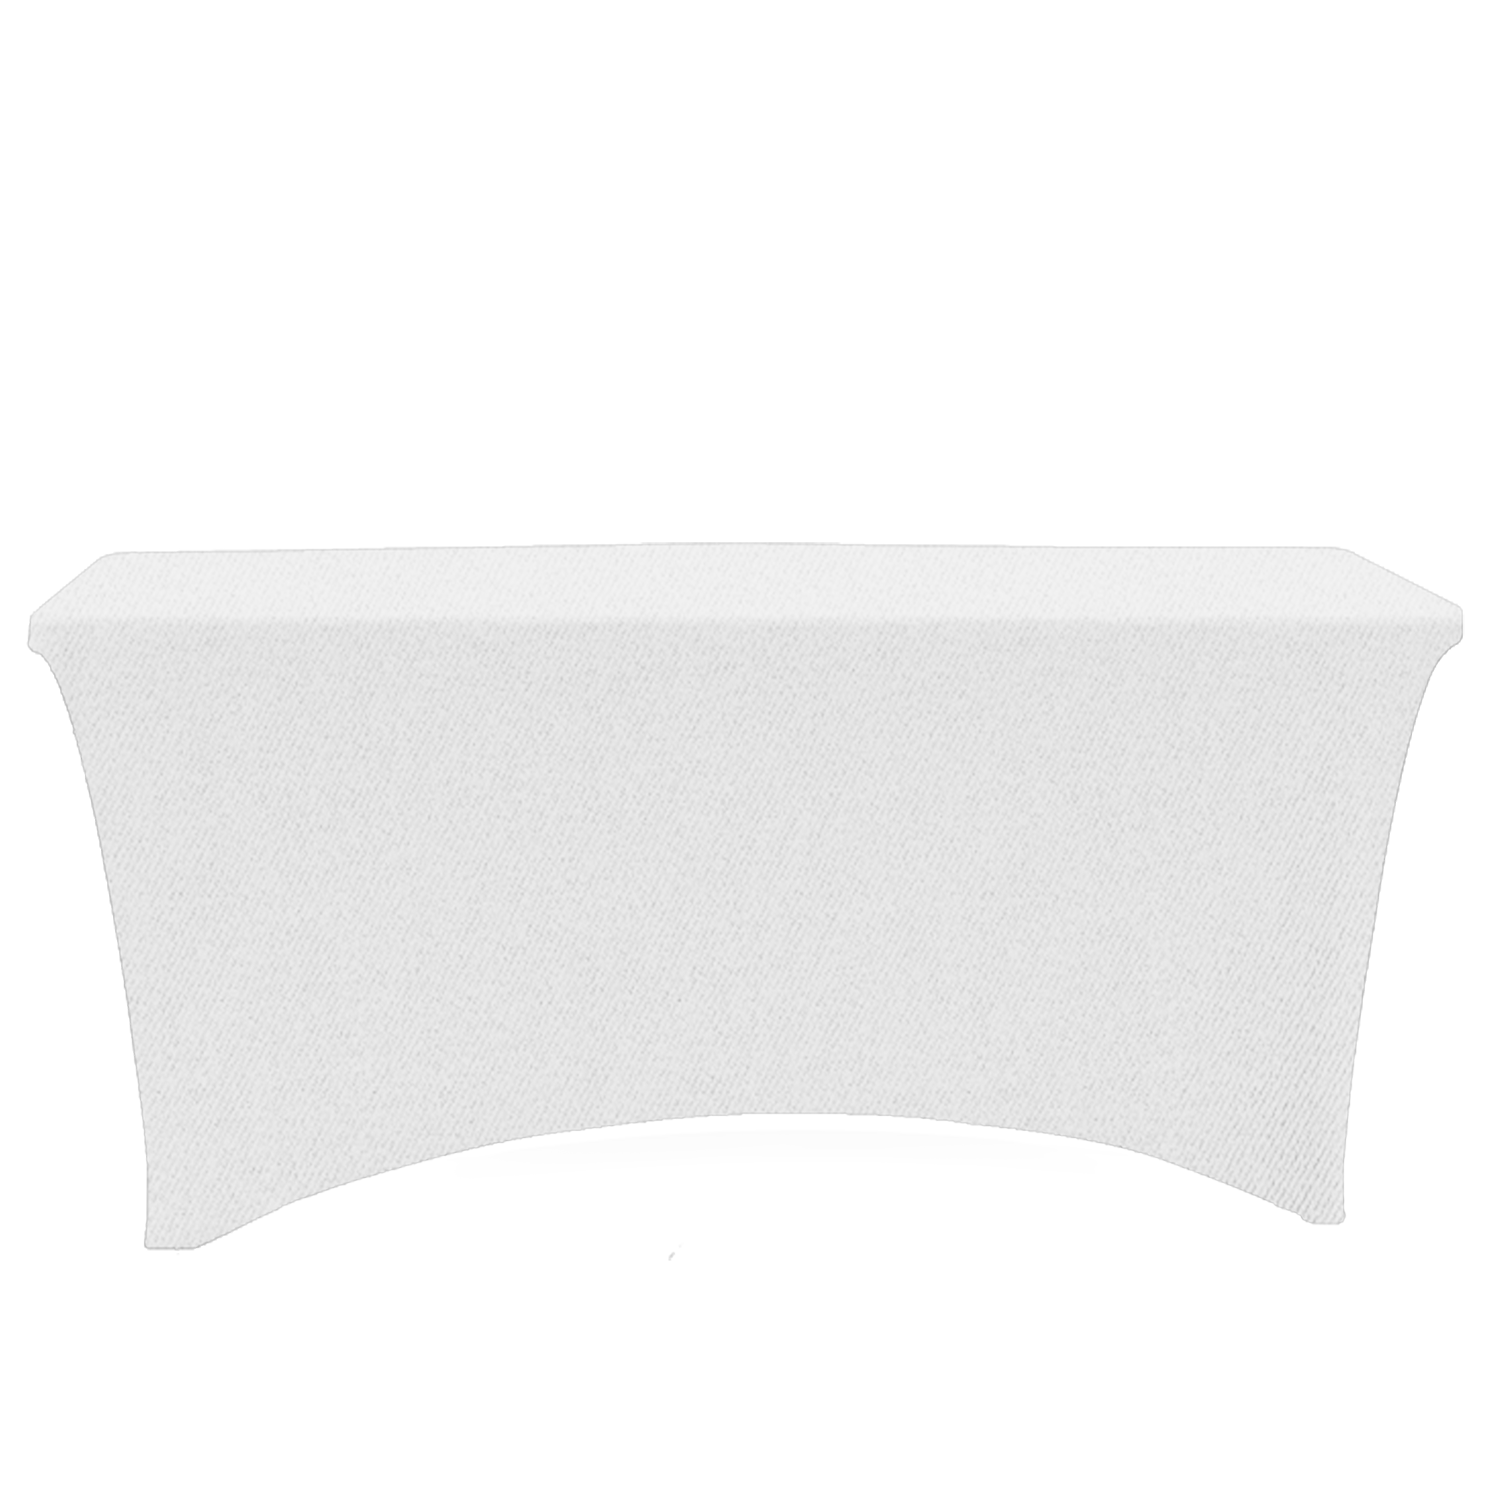 4 Sided 8ft Stretch Cover OTCSelect (C/R)